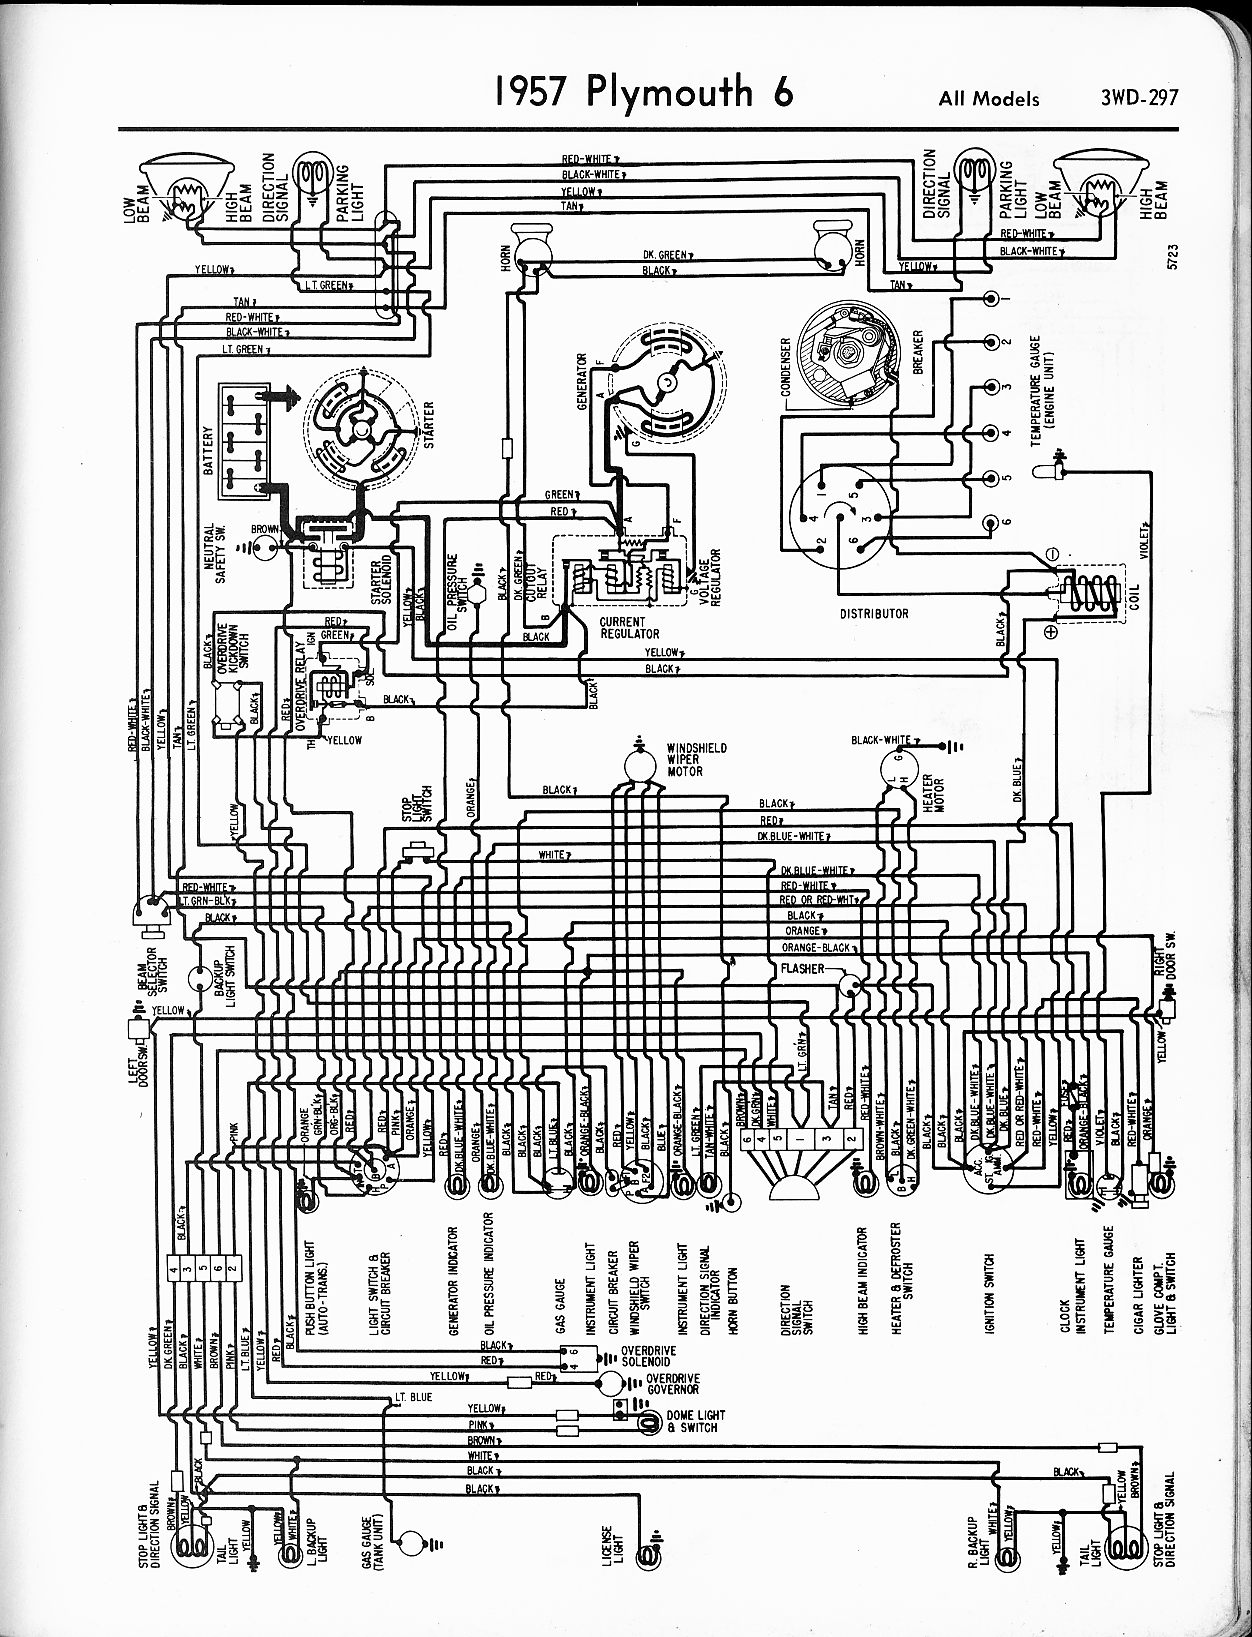 MWire5765 297 1956 1965 plymouth wiring the old car manual project plymouth wiring diagrams at bayanpartner.co